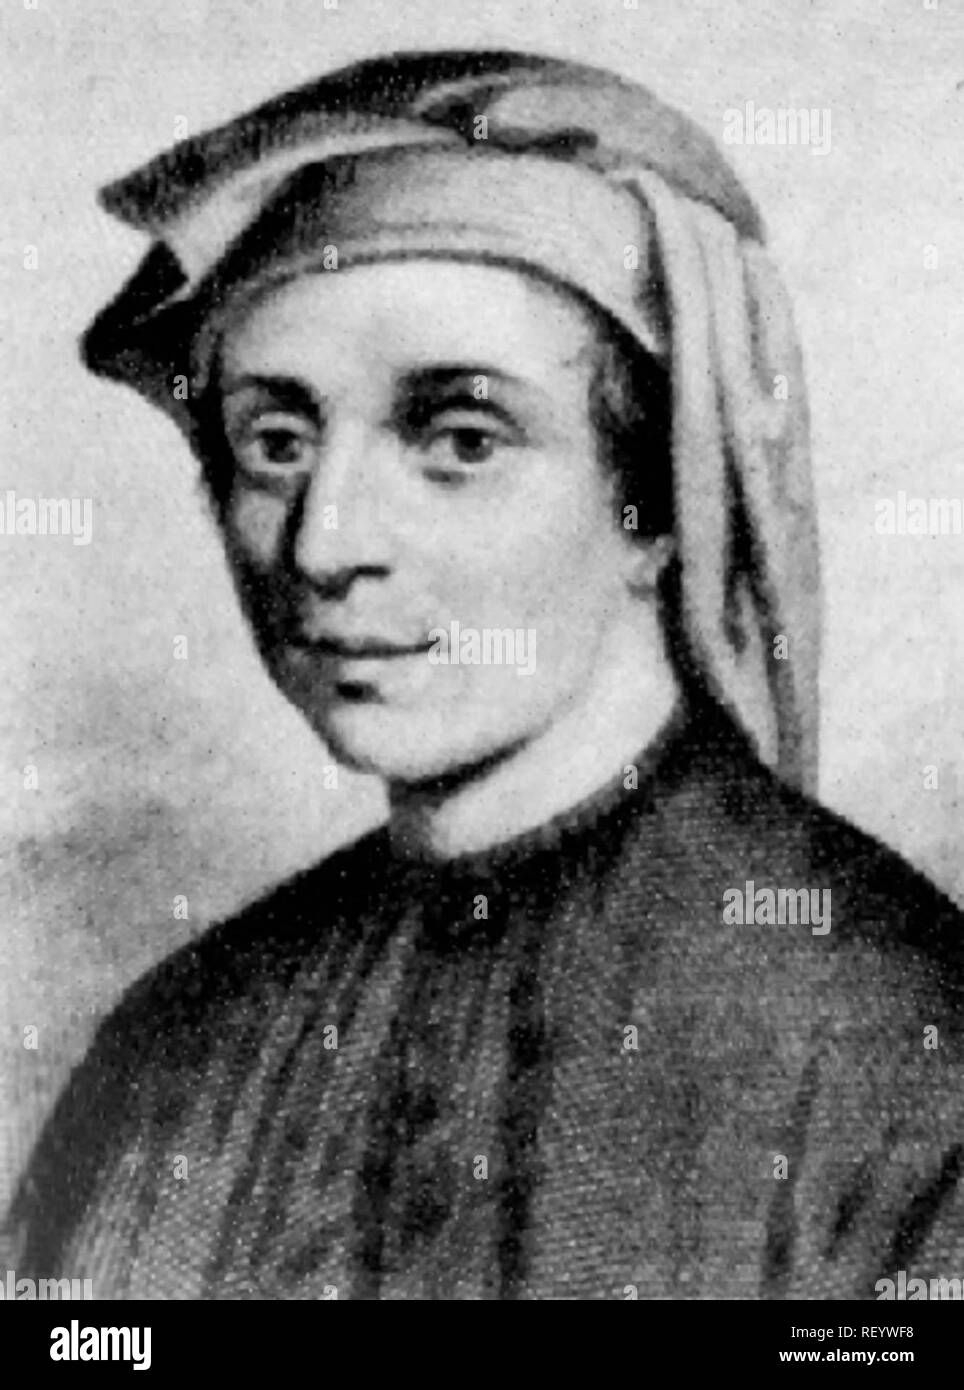 Leonardo Fibonacci, the Italian mathematician who introduced the Hindu–Arabic numeral system invented between the 1st and 4th centuries by Indian mathematicians, to the Western World - Stock Image